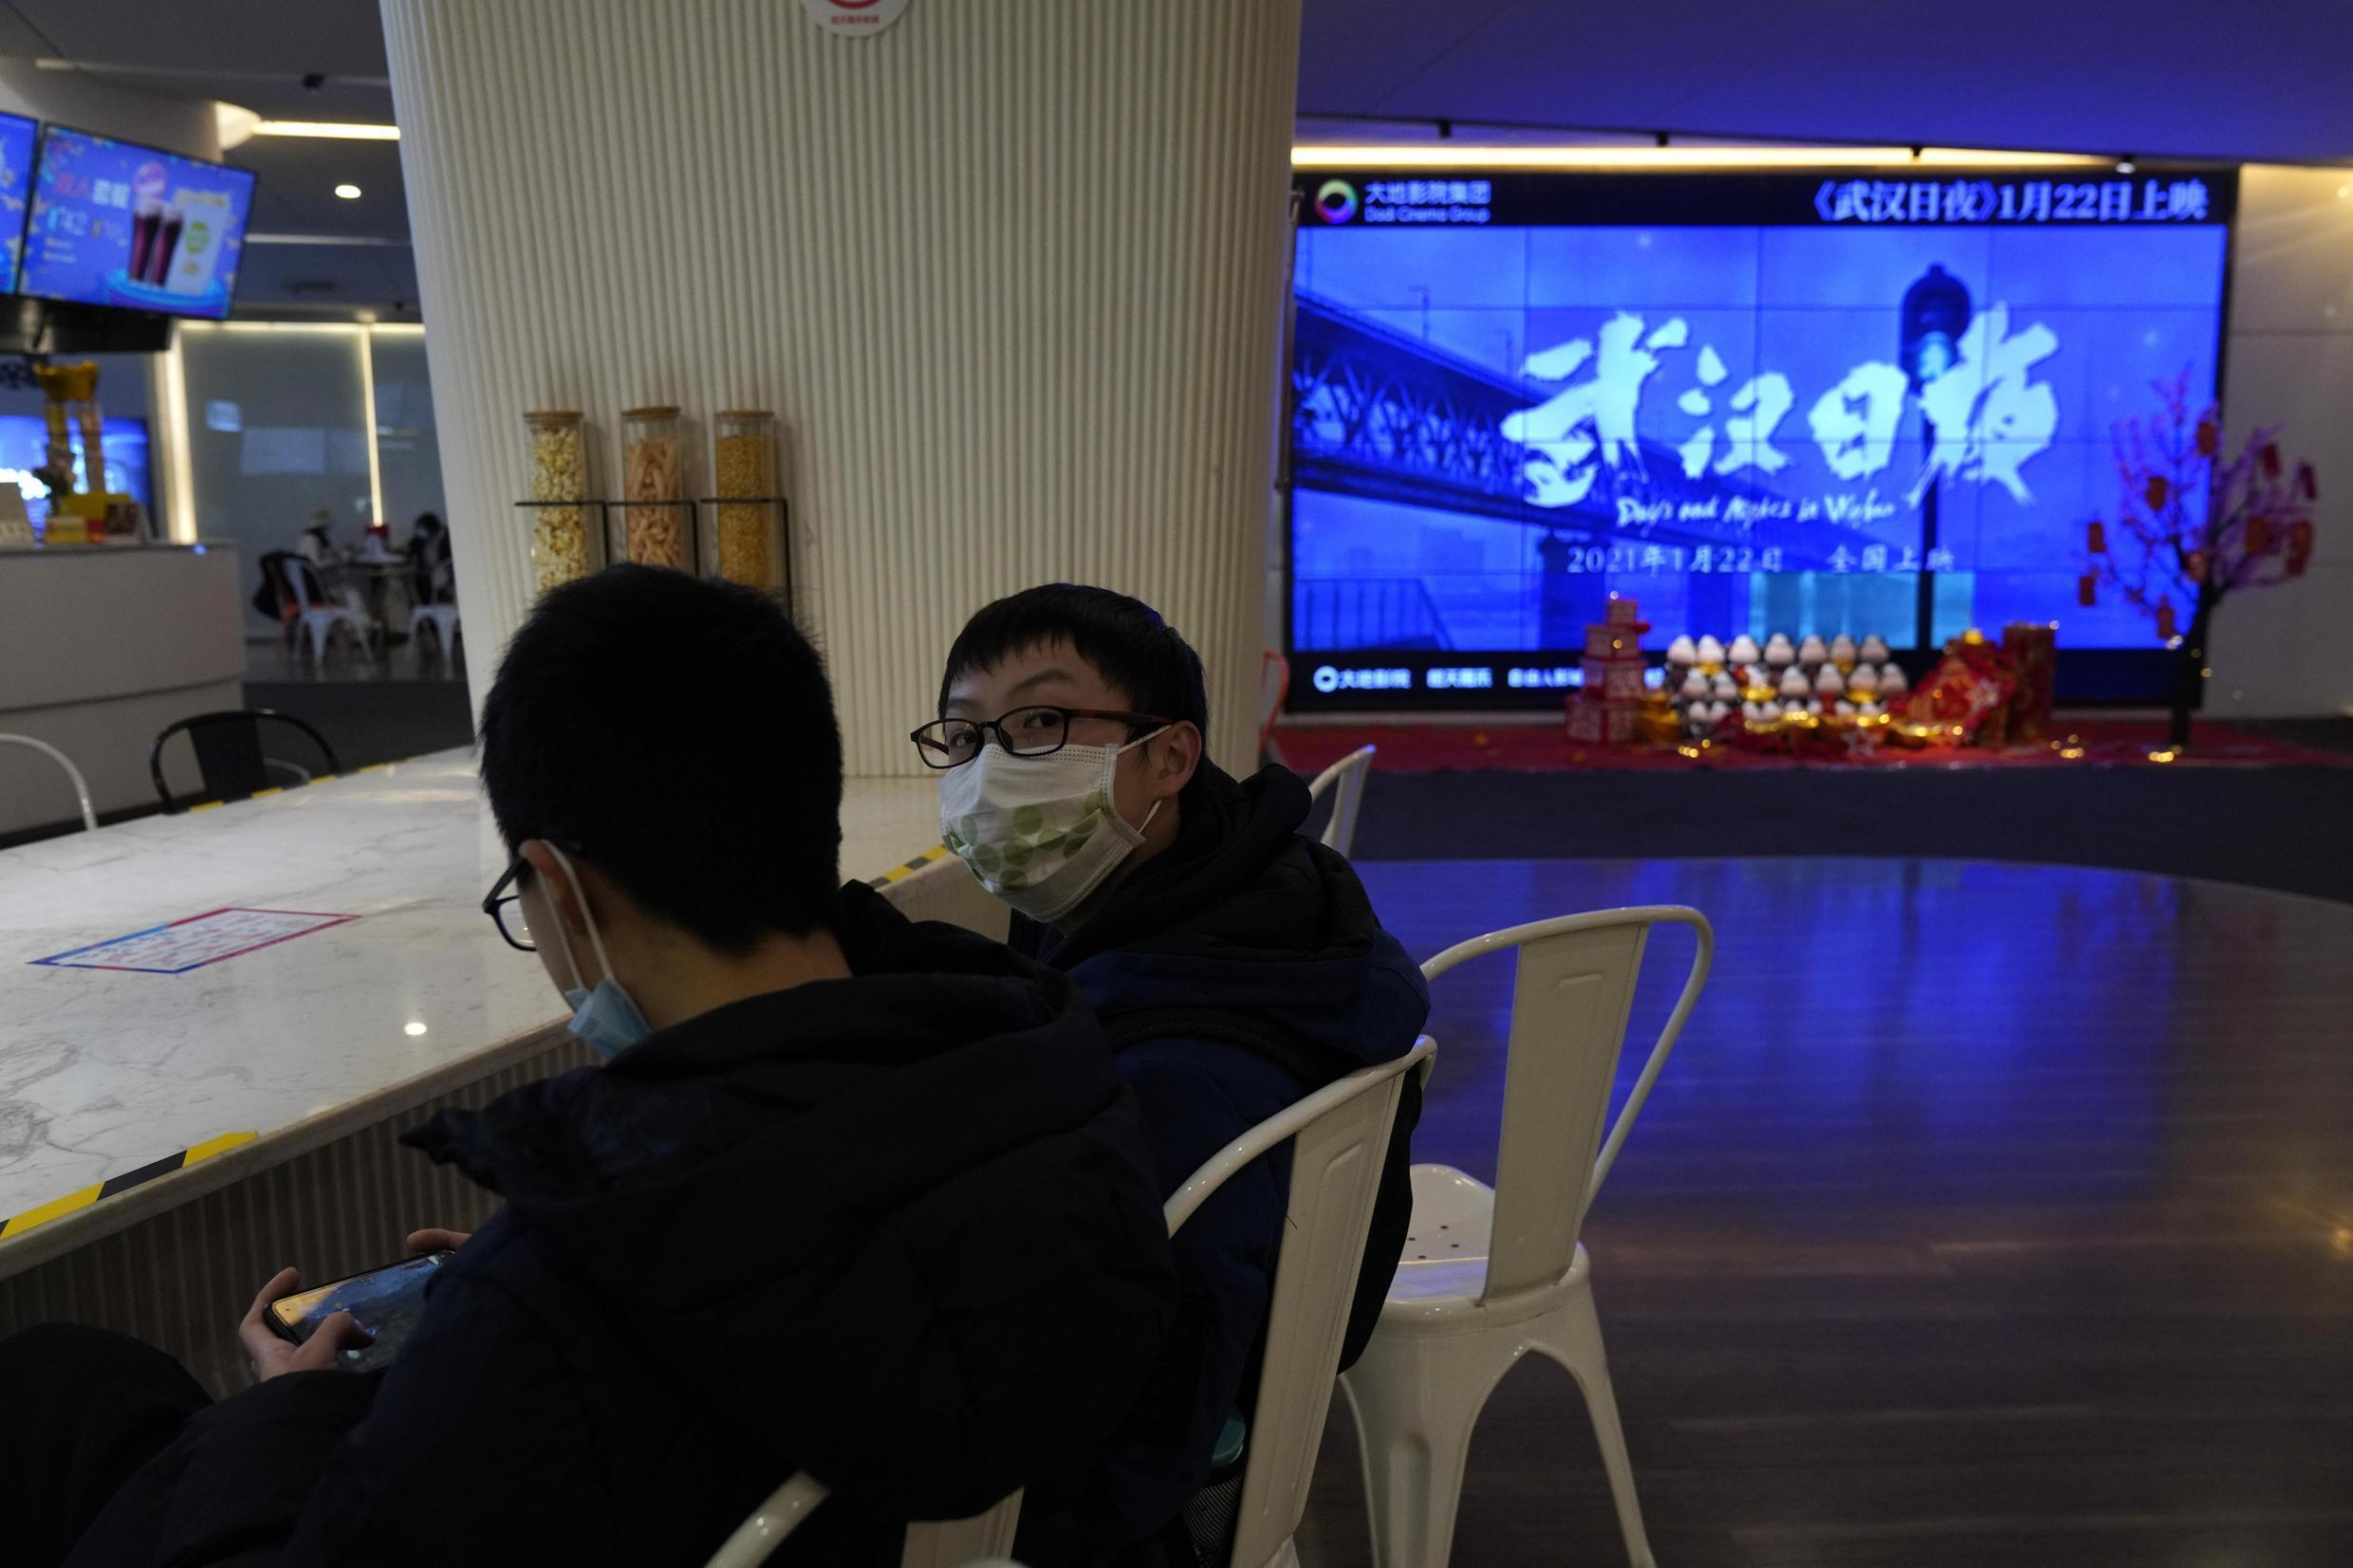 "Youths wearing masks to protect from the coronavirus chat near a screen showing a trailer for the film ""Days and Nights in Wuhan"" in a cineplex in Wuhan in central China's Hubei province on Friday, Jan. 22, 2021. China is rolling out the state-backed film praising Wuhan ahead of the anniversary of the 76-day lockdown in the central Chinese city where the coronavirus was first detected."